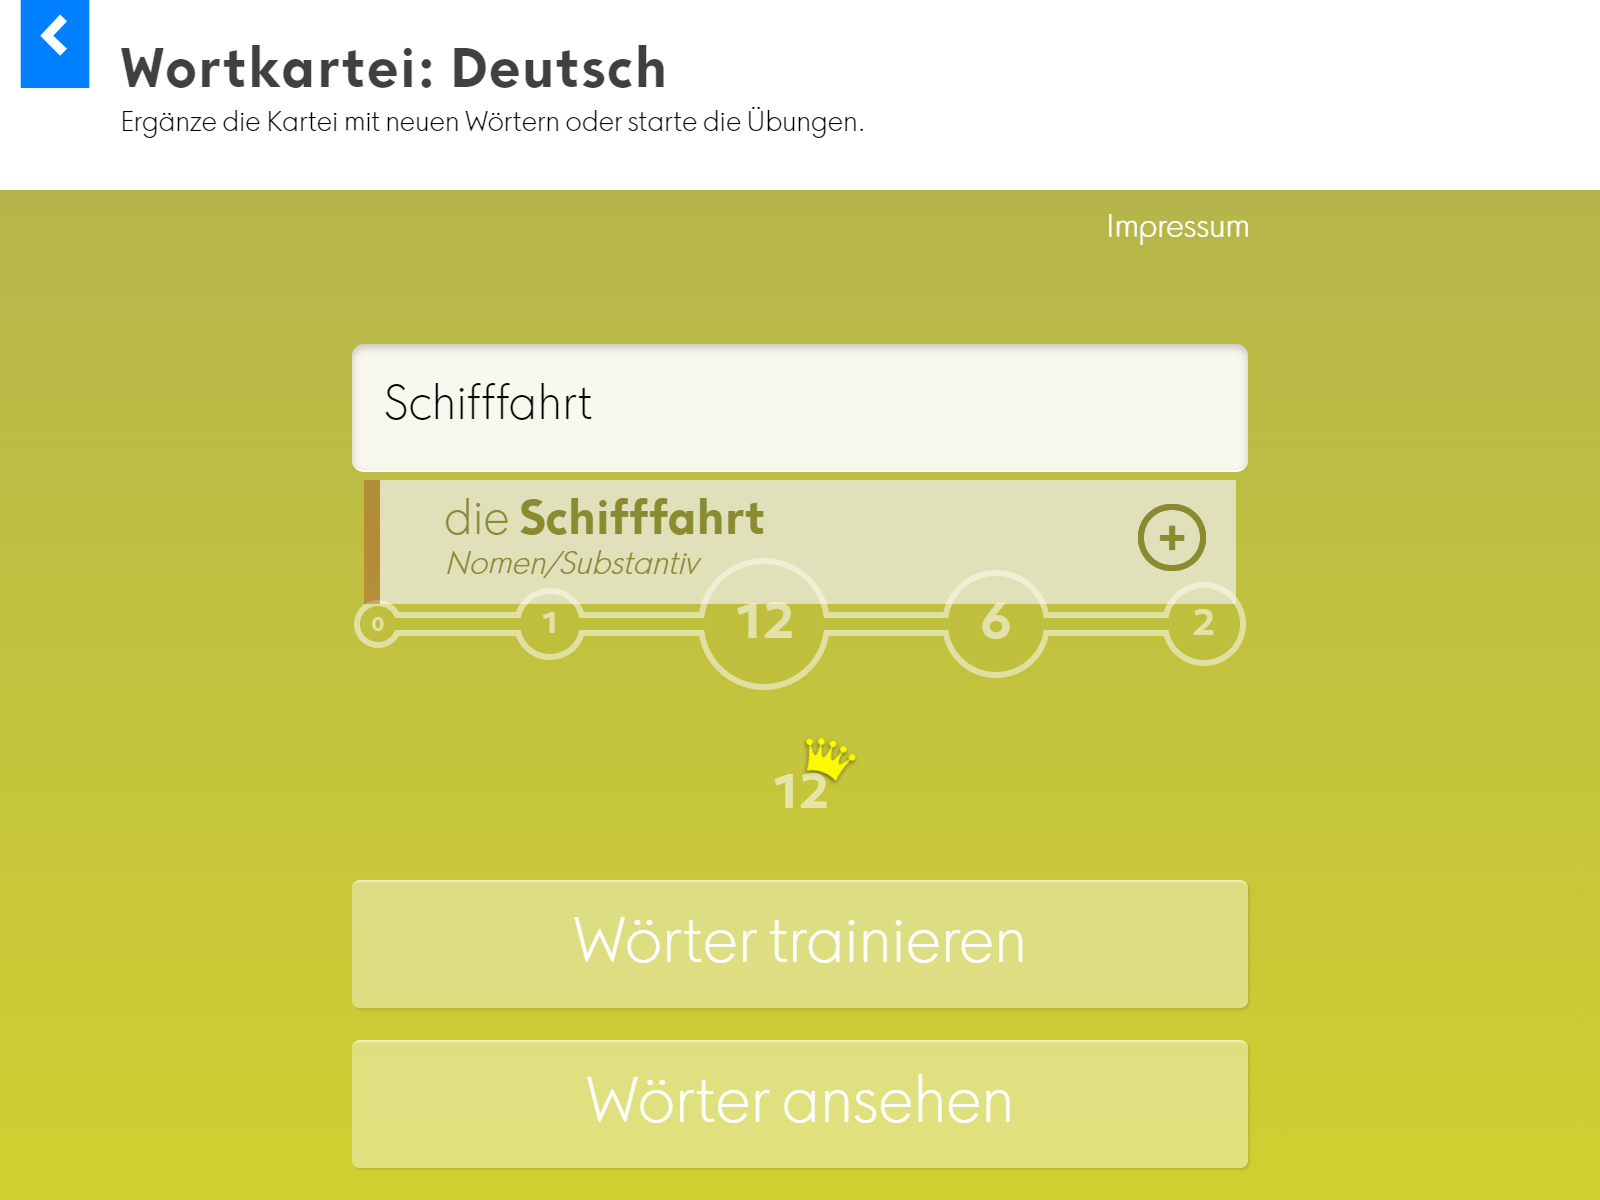 Wortkartei: Deutsch Screenshot 1